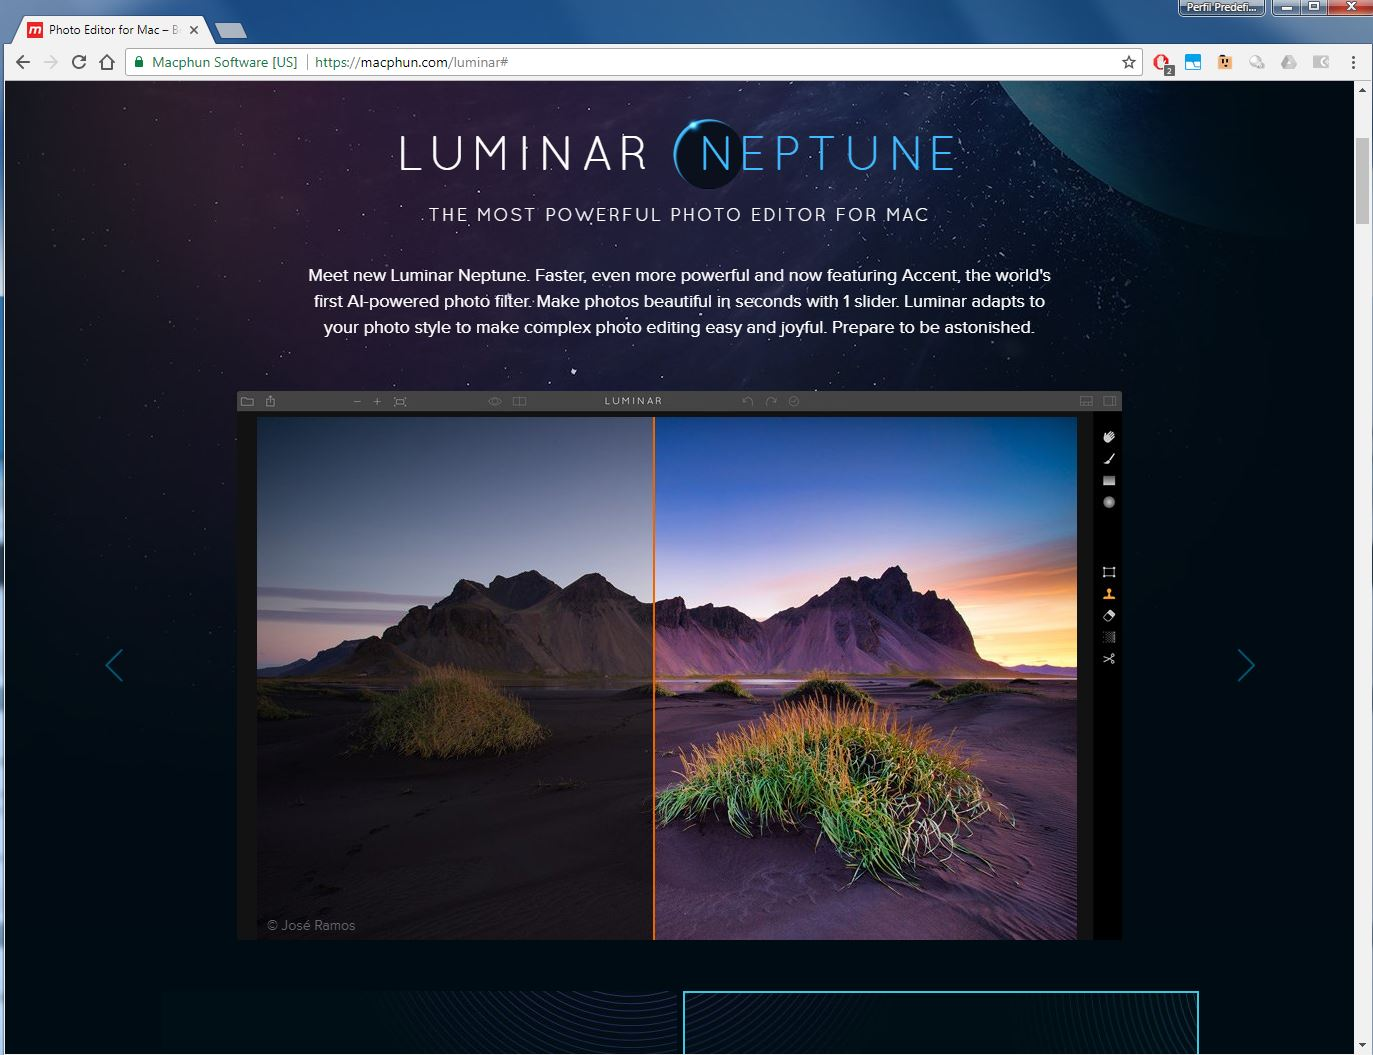 Macphun Luminar collaboration with José Ramos landscape photographer from Portugal